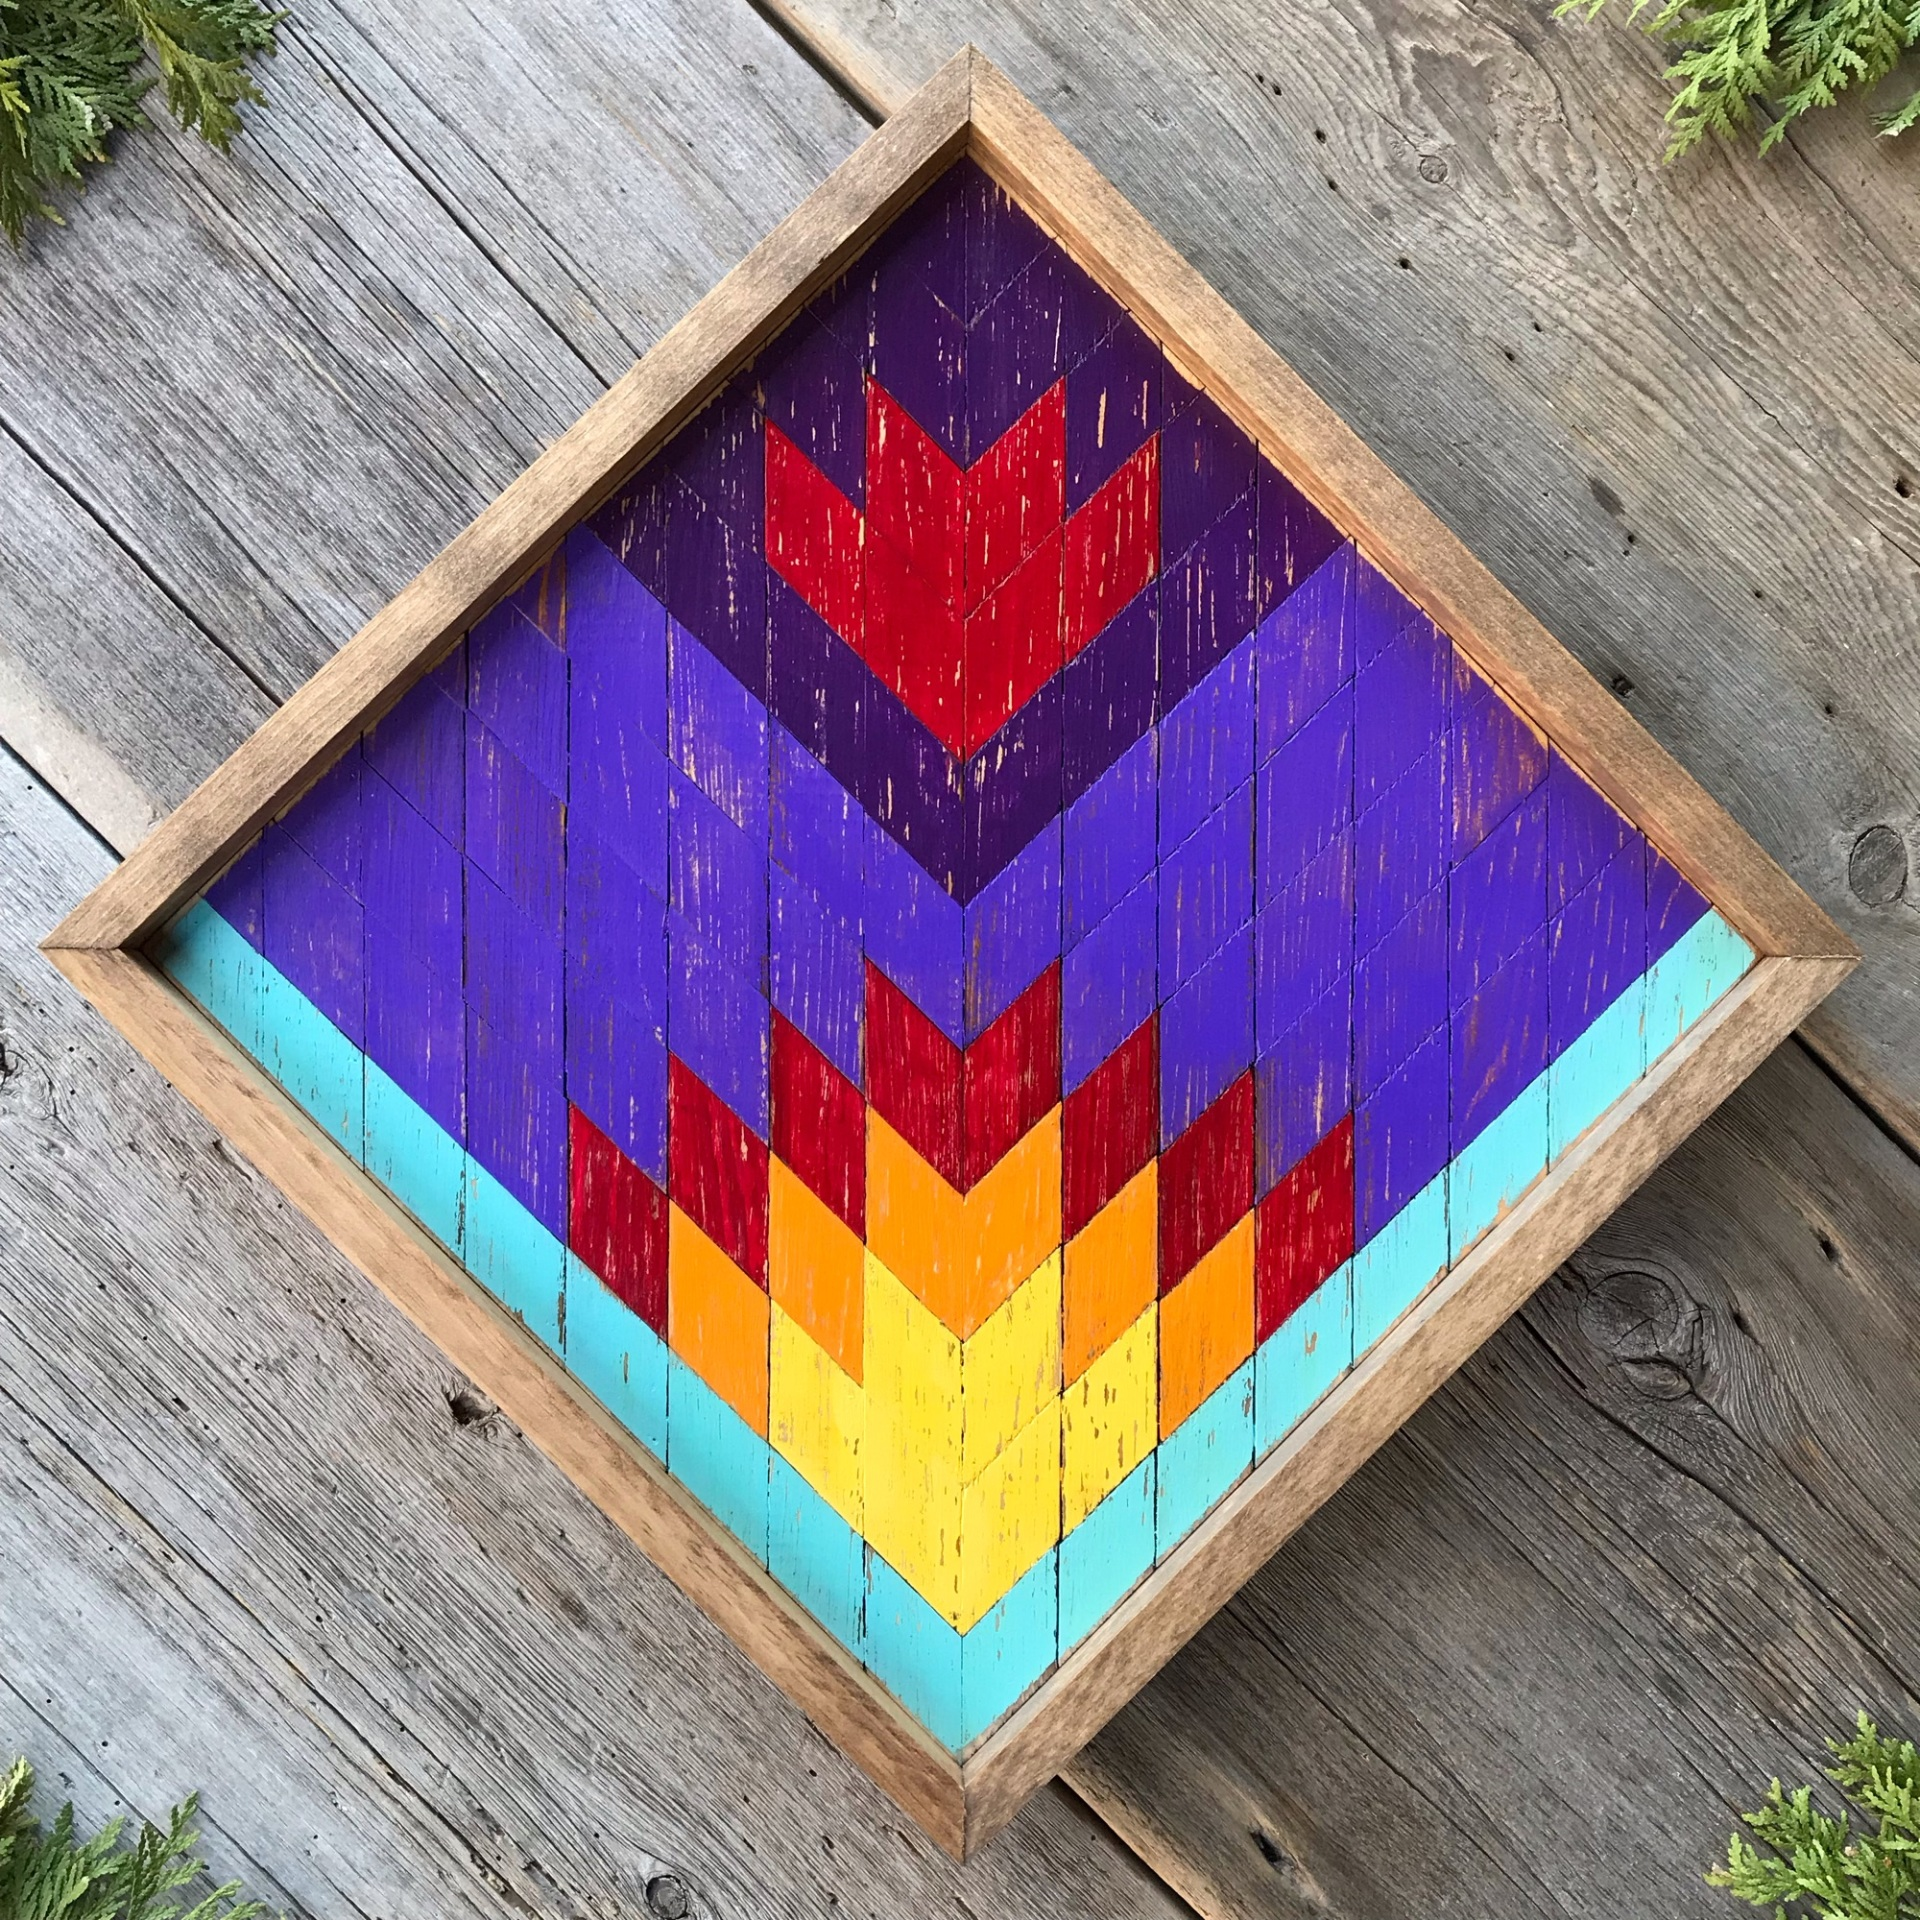 Barn Quilt, Wood Wall Art, Mosaic Wall Art, Colorful Geometric Patterns, Quilt Square, Southwestern Decor, Boho Decor